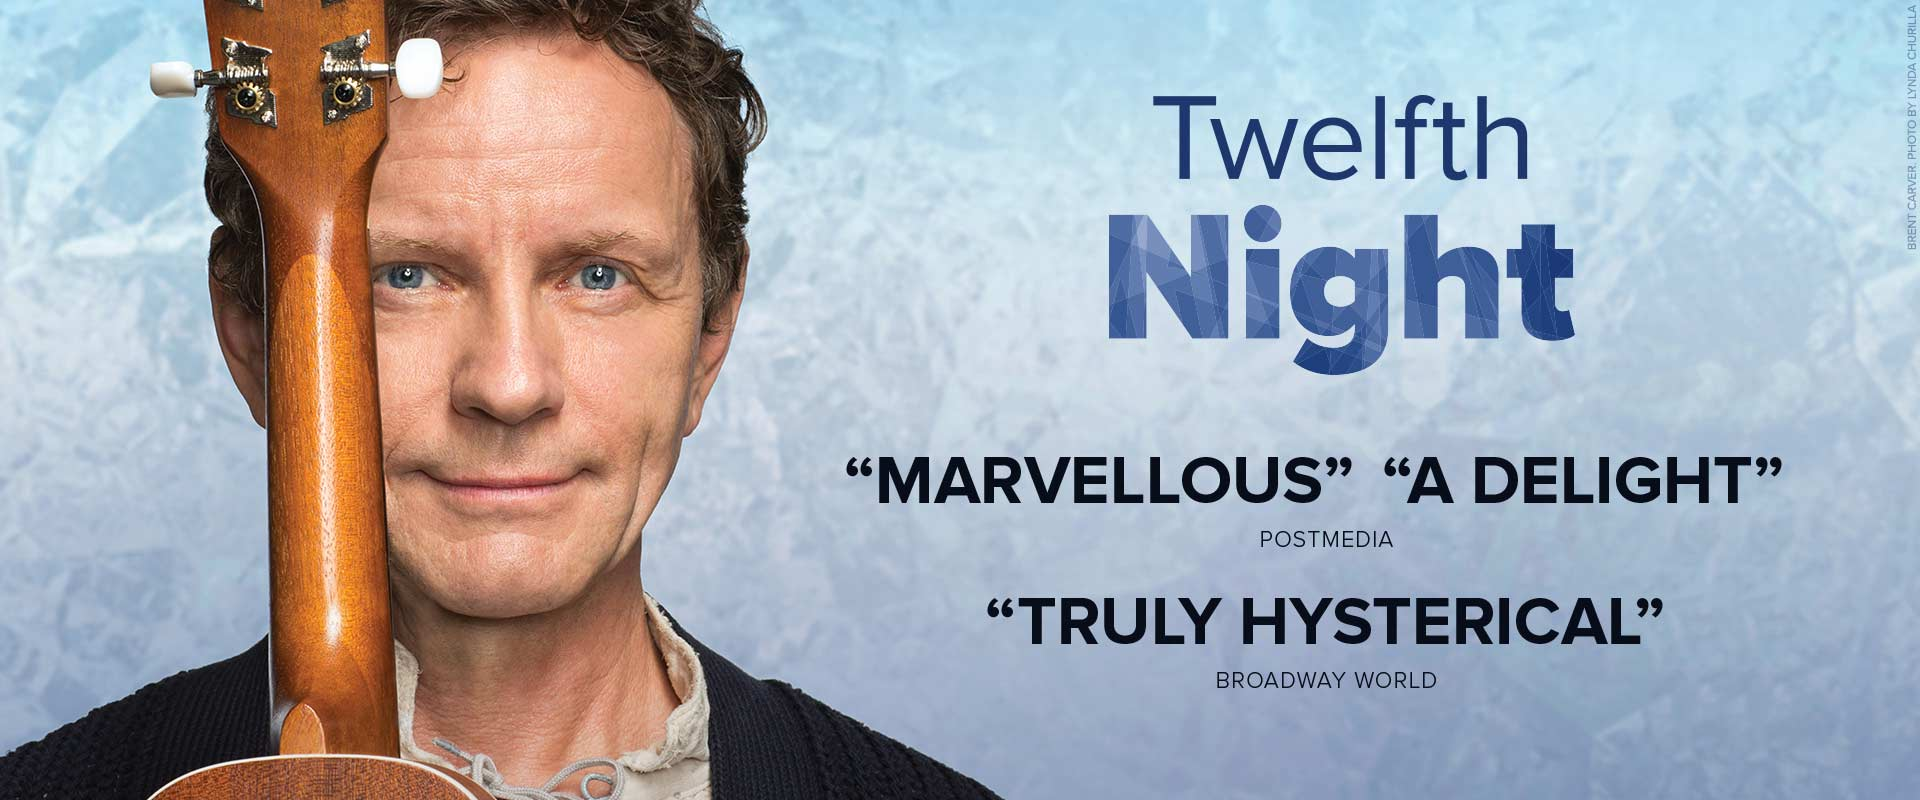 Publicity image from Twelfth Night featuring Brent Carver